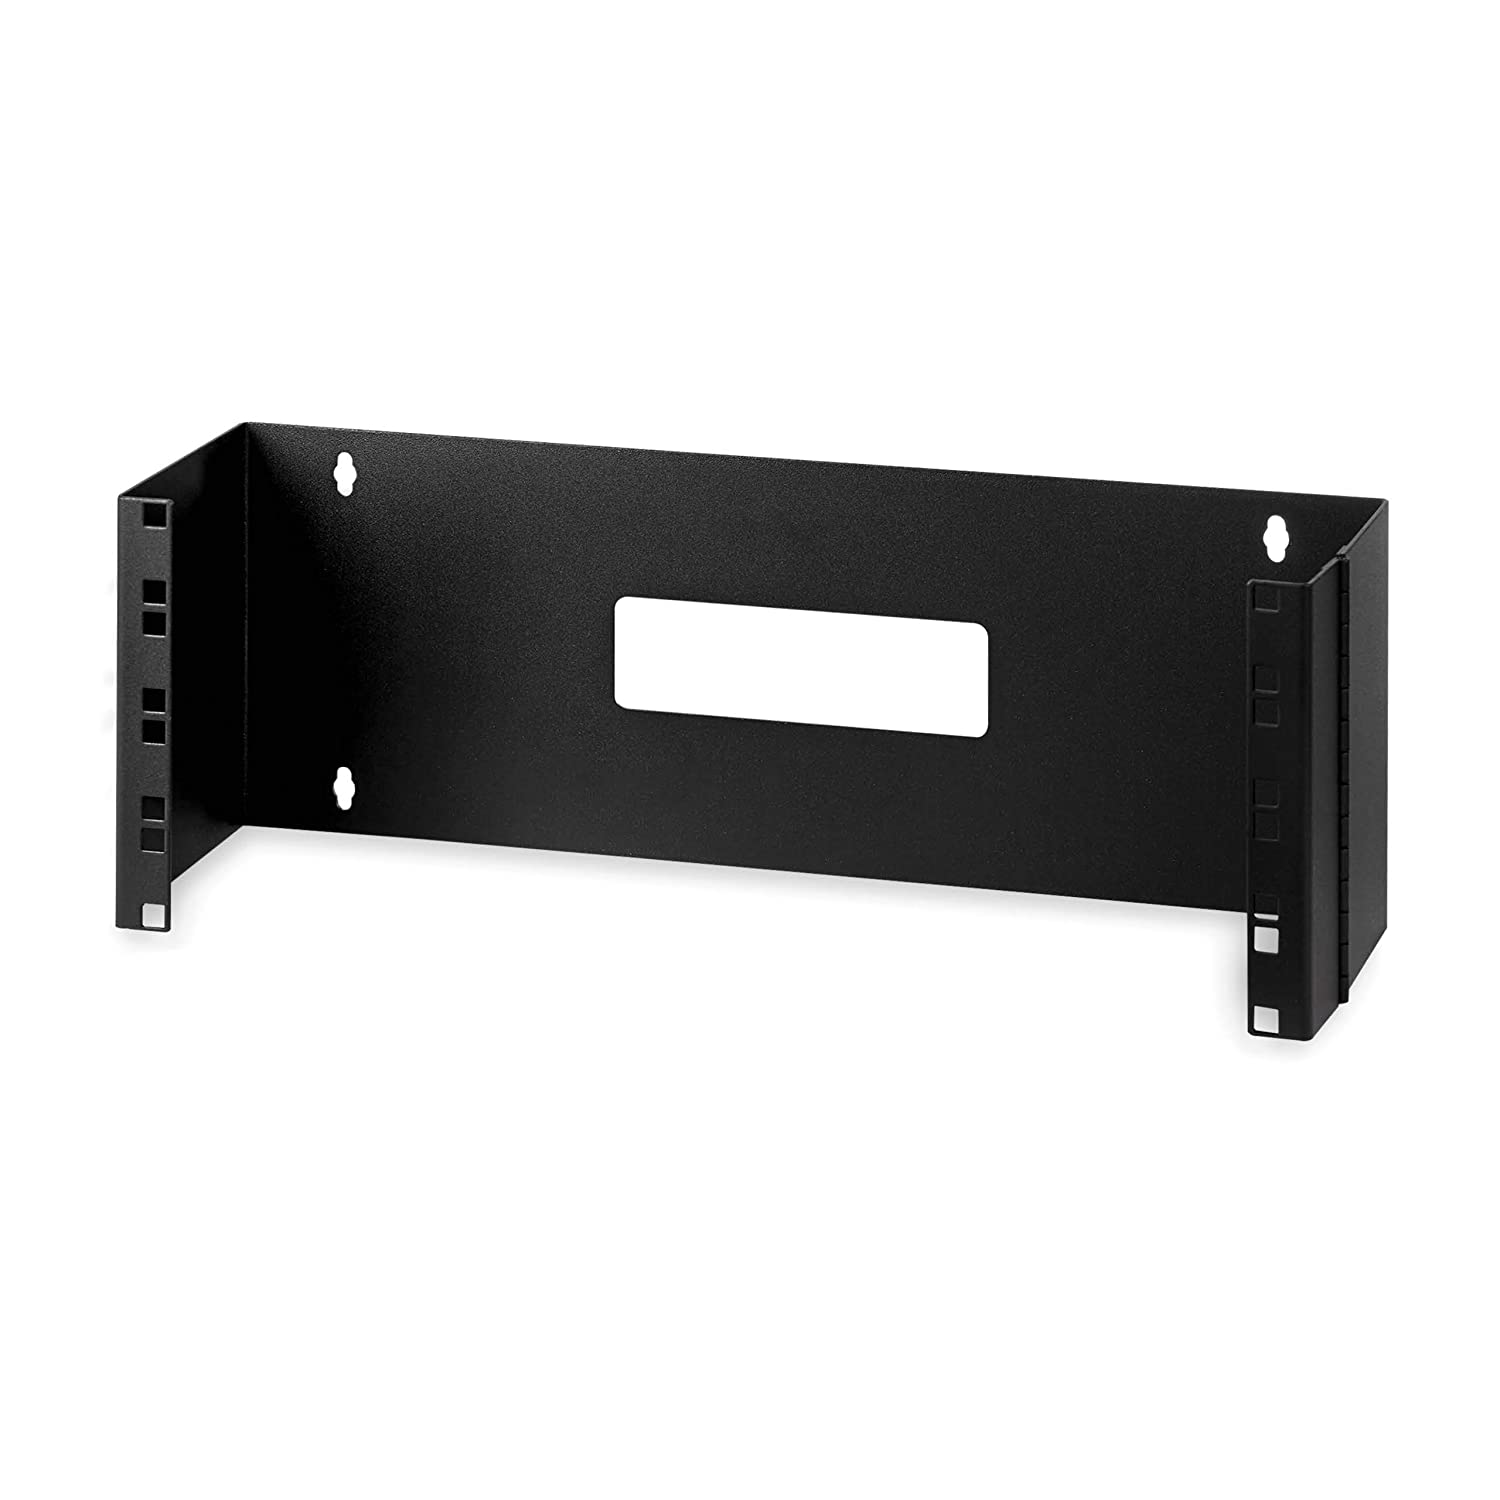 "StarTech.com 4U Hinged Wall Mount Patch Panel Bracket - 6 inch Deep - 19"" Patch Panel Swing Rack for Shallow Network Equipment- 33lbs (WALLMOUNTH4)"